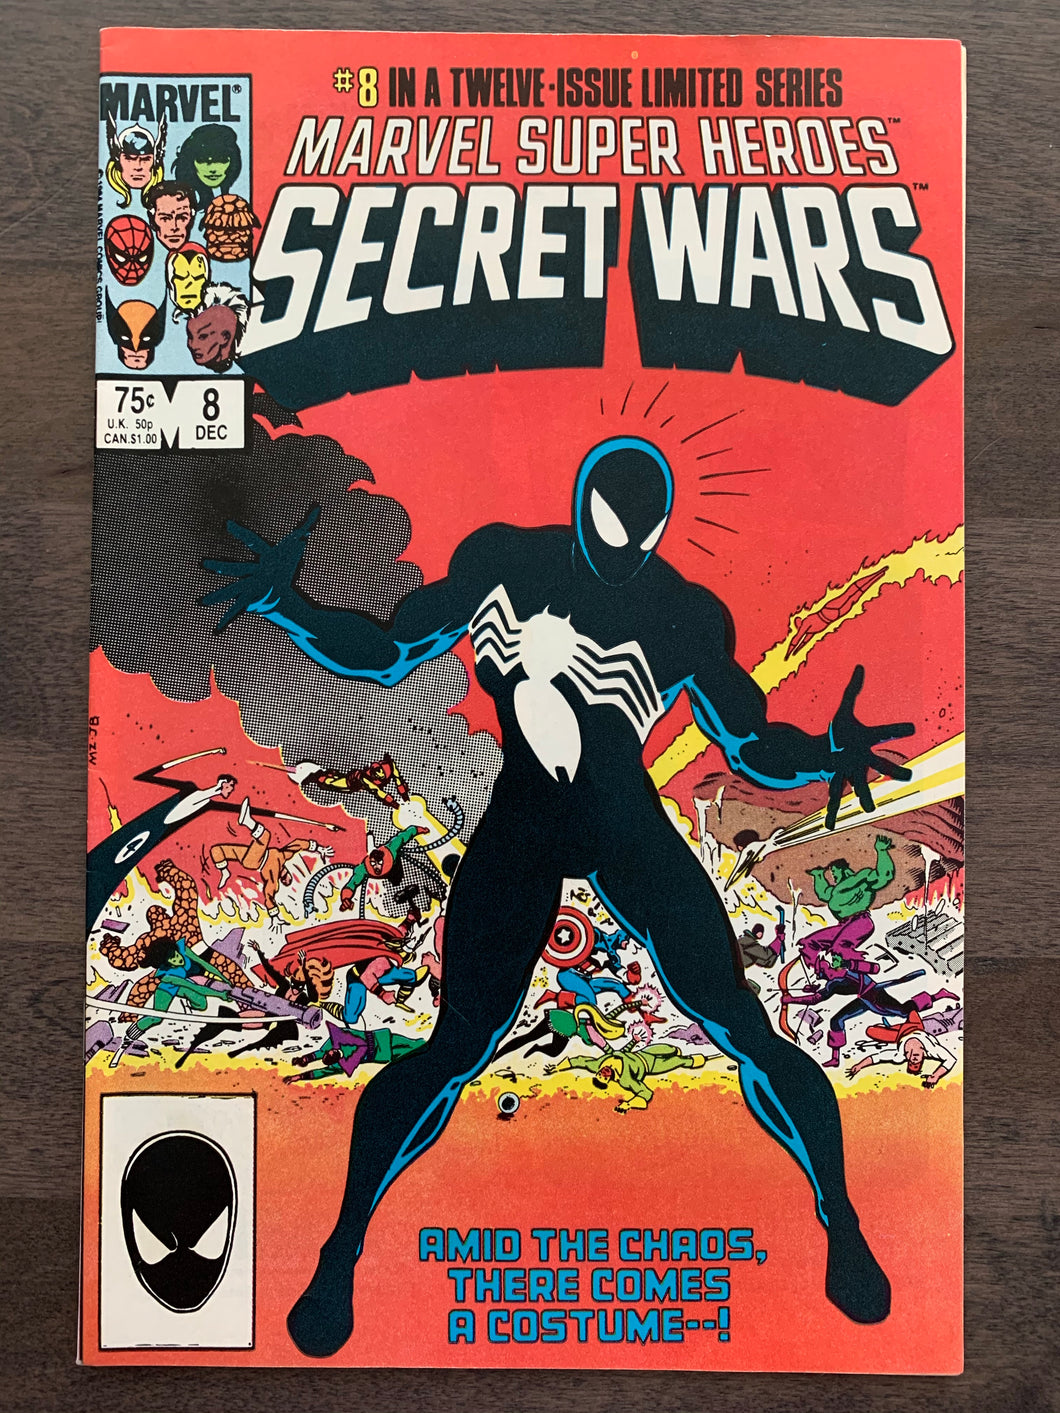 Marvel Super Heroes Secret Wars #8 - Symbiote Origin